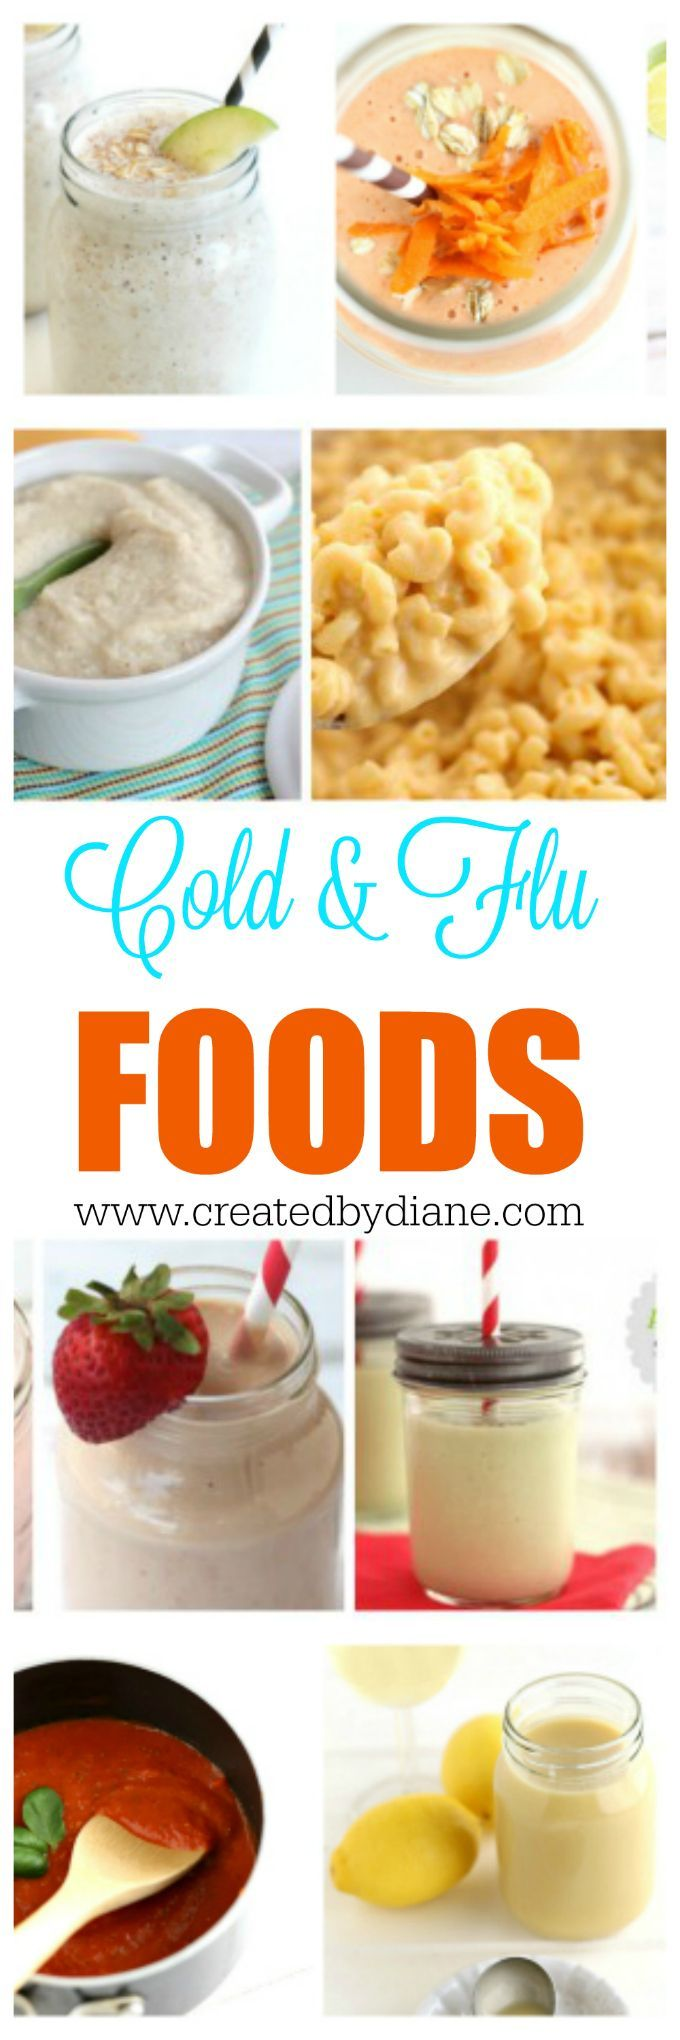 soft food diet dental surgery, wisdom tooth removal